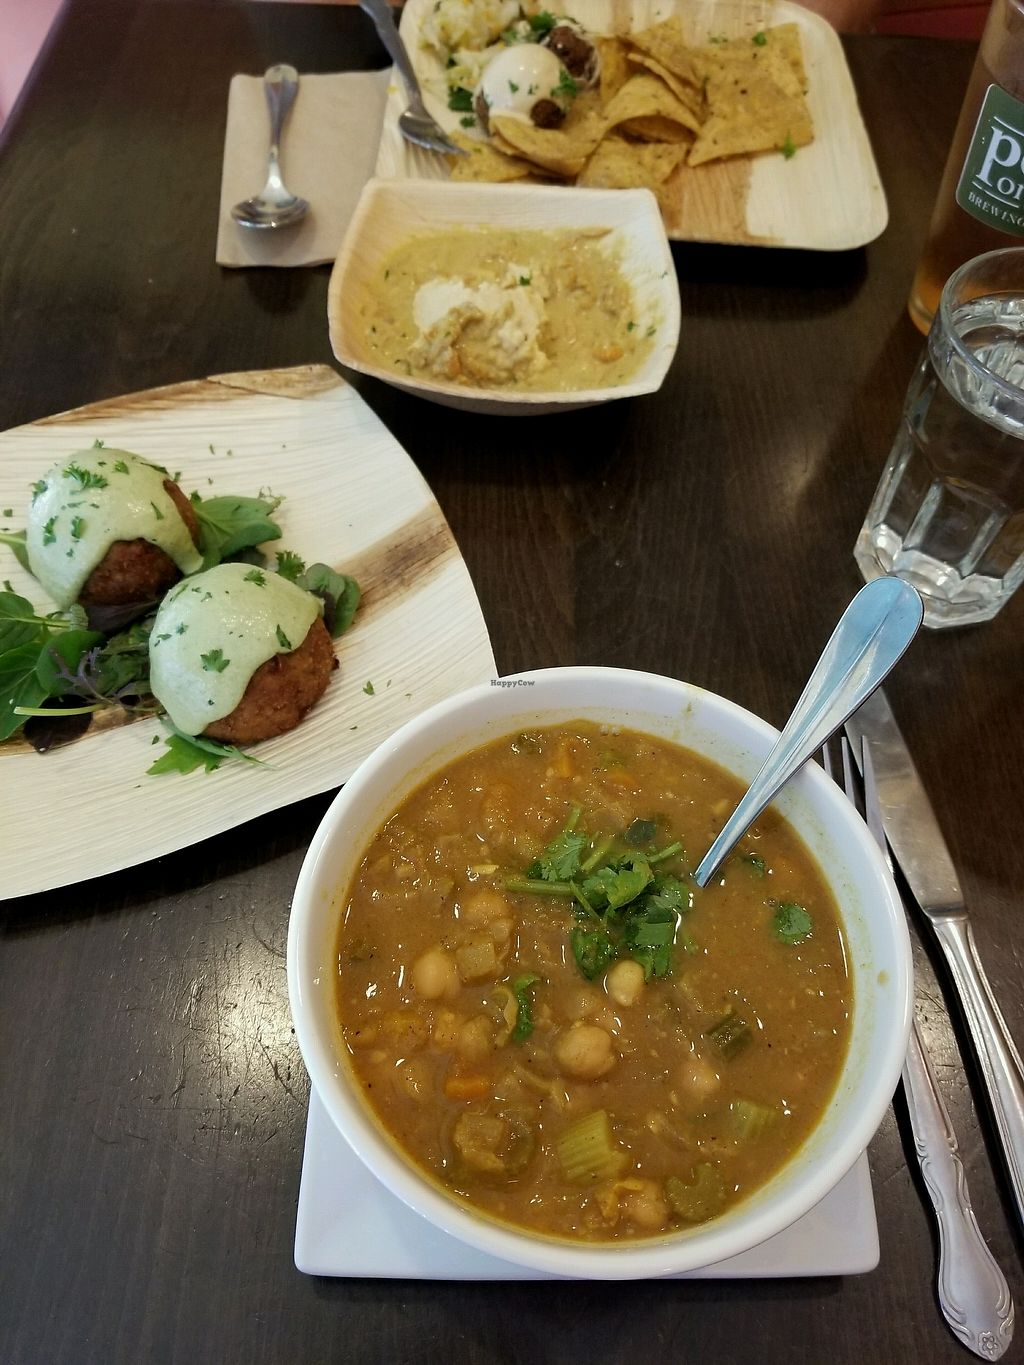 "Photo of Hearty Eats  by <a href=""/members/profile/TerriP"">TerriP</a> <br/>Delicious Vegan Meal <br/> October 6, 2017  - <a href='/contact/abuse/image/48062/312497'>Report</a>"